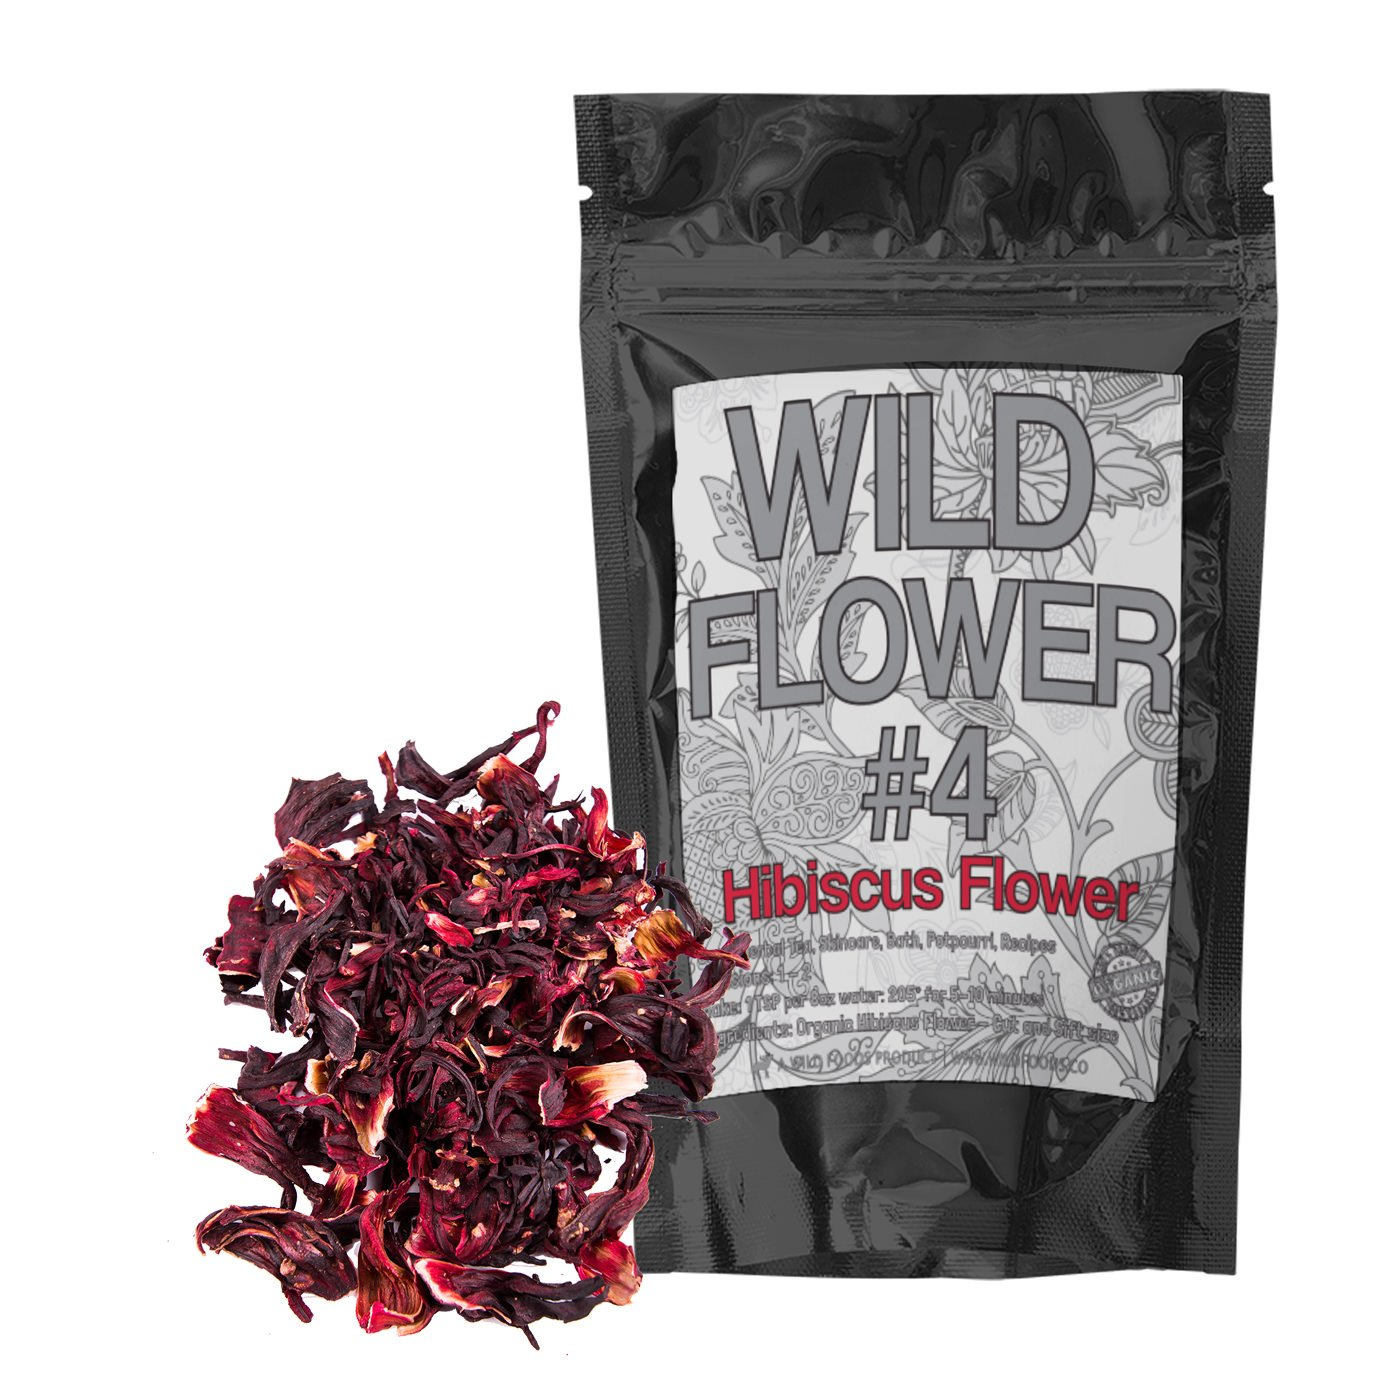 Best Dried Hibiscus Flowers For Tea Amazon